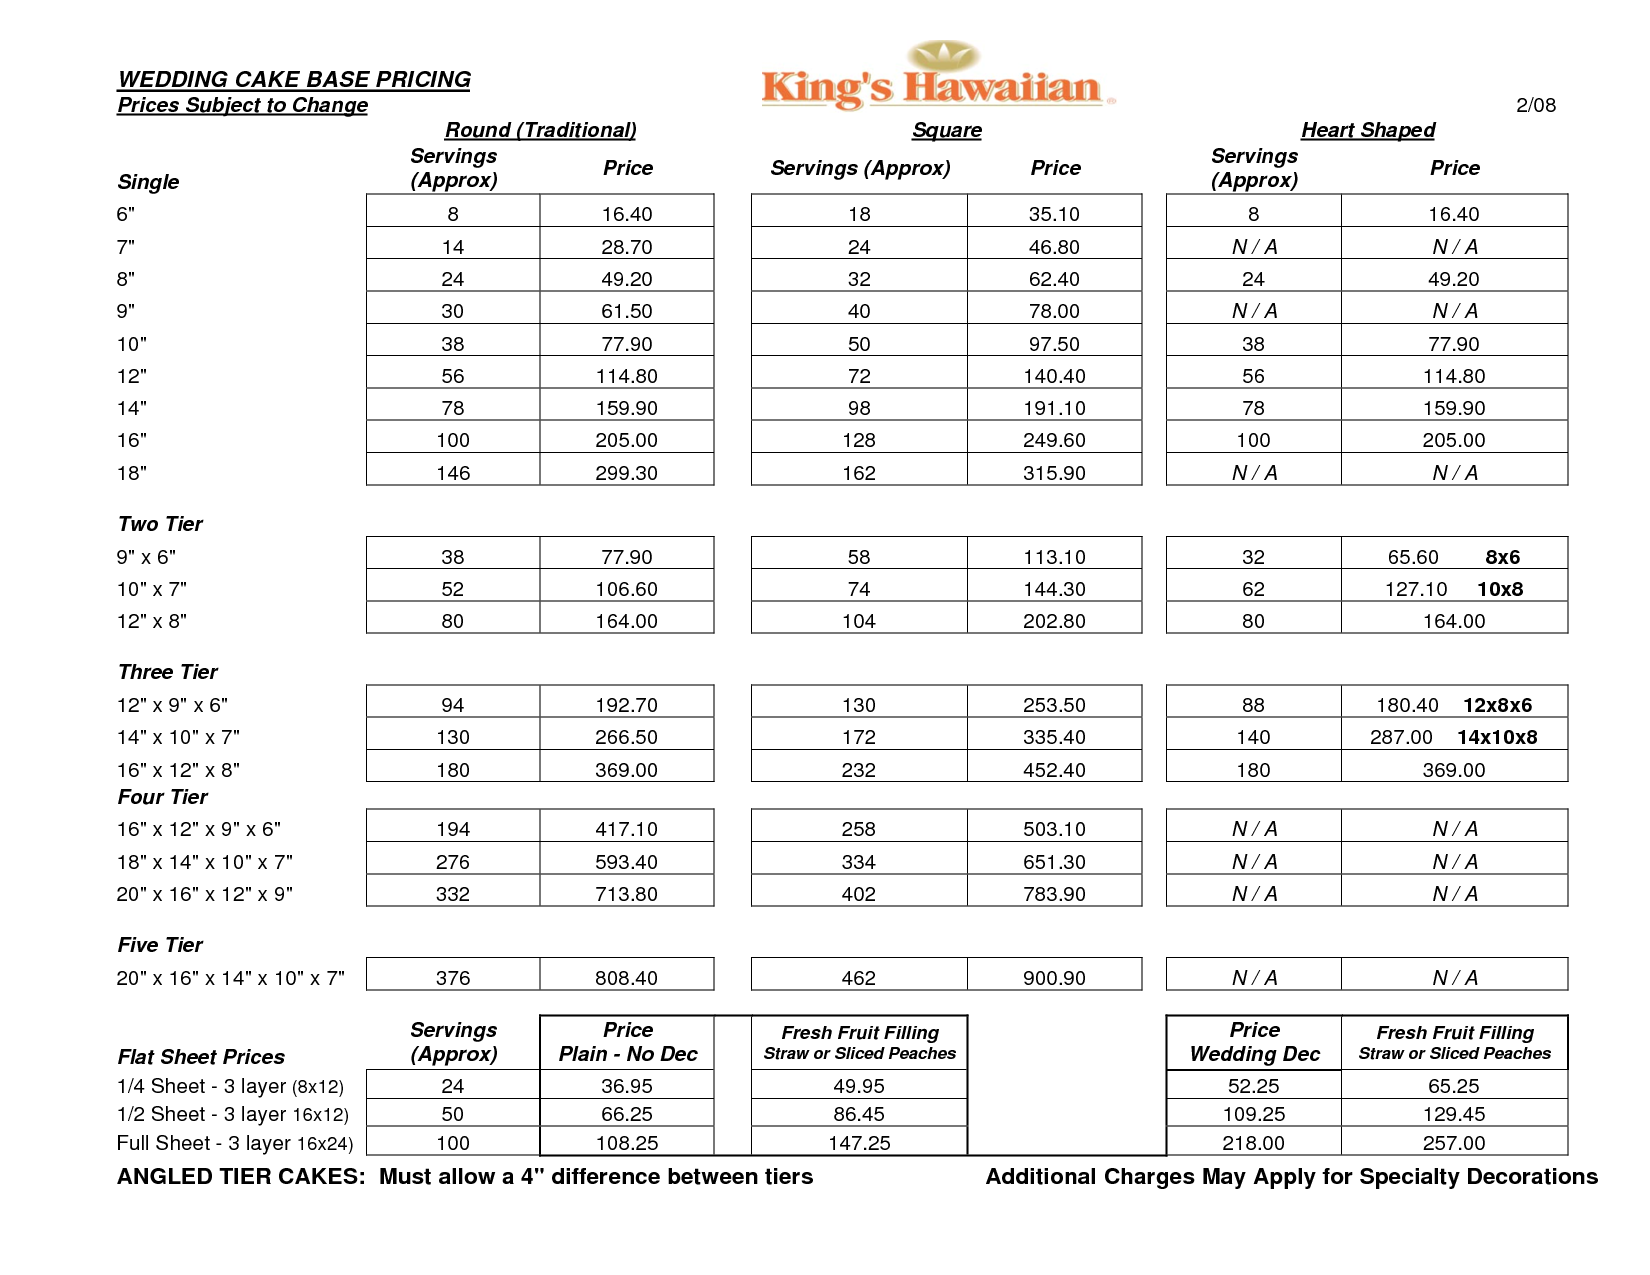 Bakery sales guide to pricing wedding cakes pricing